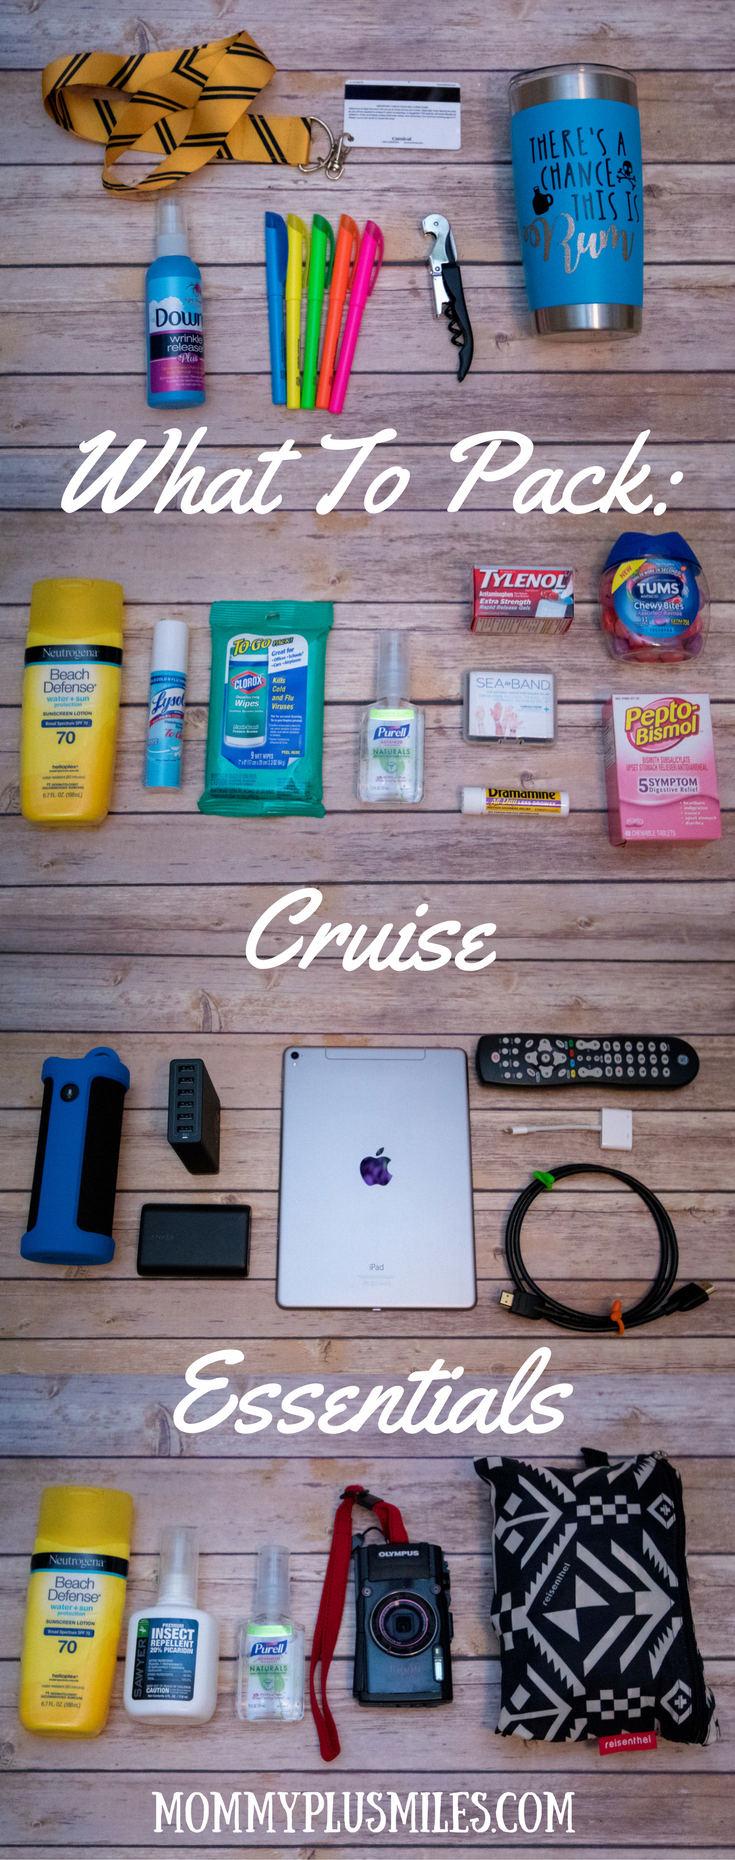 From ship essentials to healthcare, entertainment, and excursion essentials here is a comprehensive guide for what to pack for a cruise. With these cruise essentials in your luggage, you'll be able to stay happy and healthy while you cruise. #travelchecklist #summercruiseoutfits